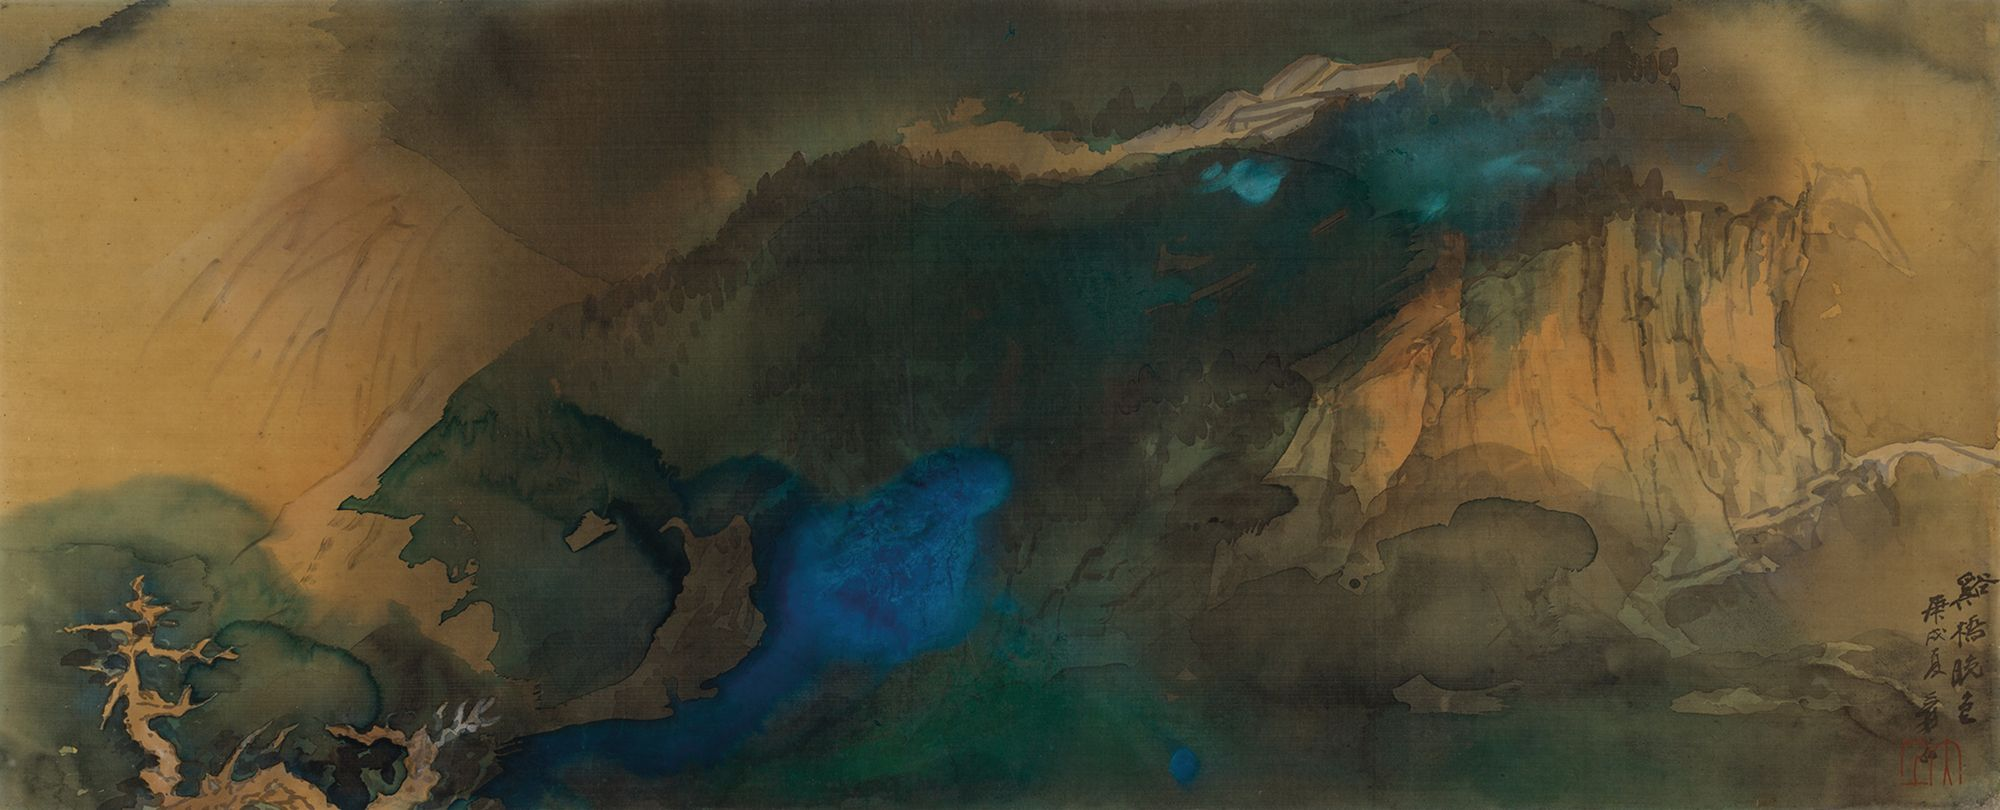 Evening Colors over the Stream and Bridge (1970) by Zhang Daqian